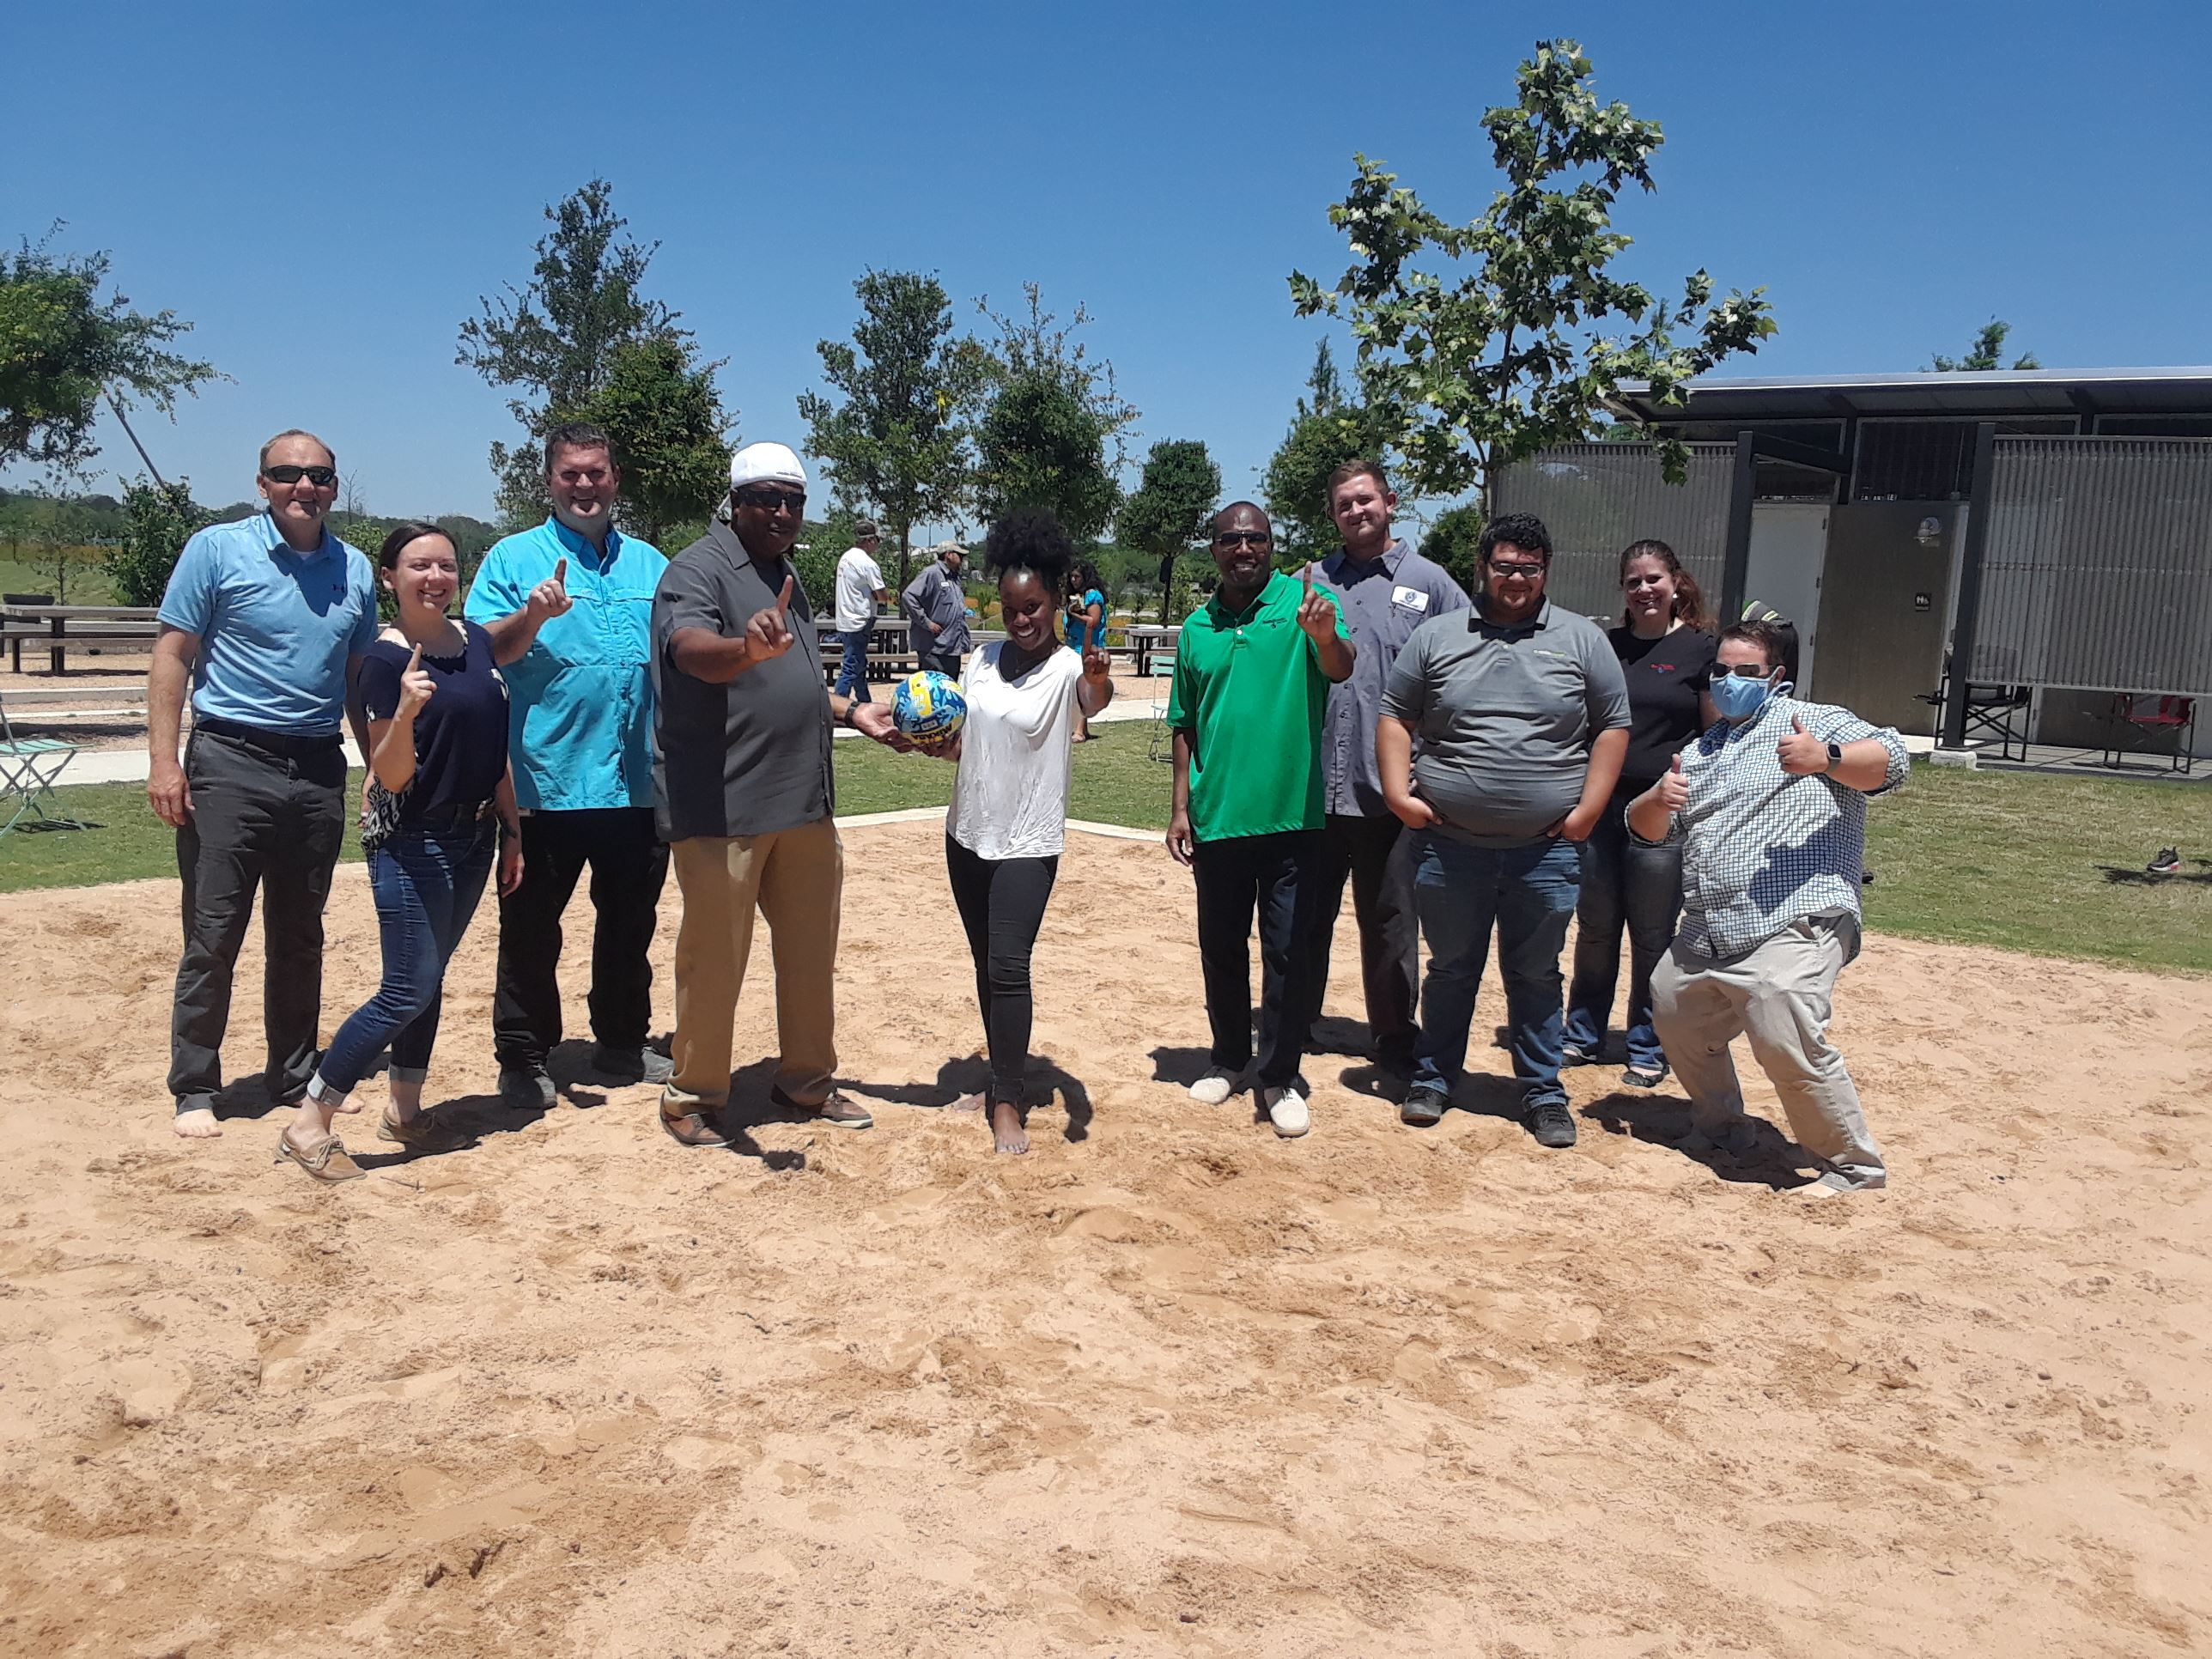 City of Buda employees celebrate after a sand volleyball game